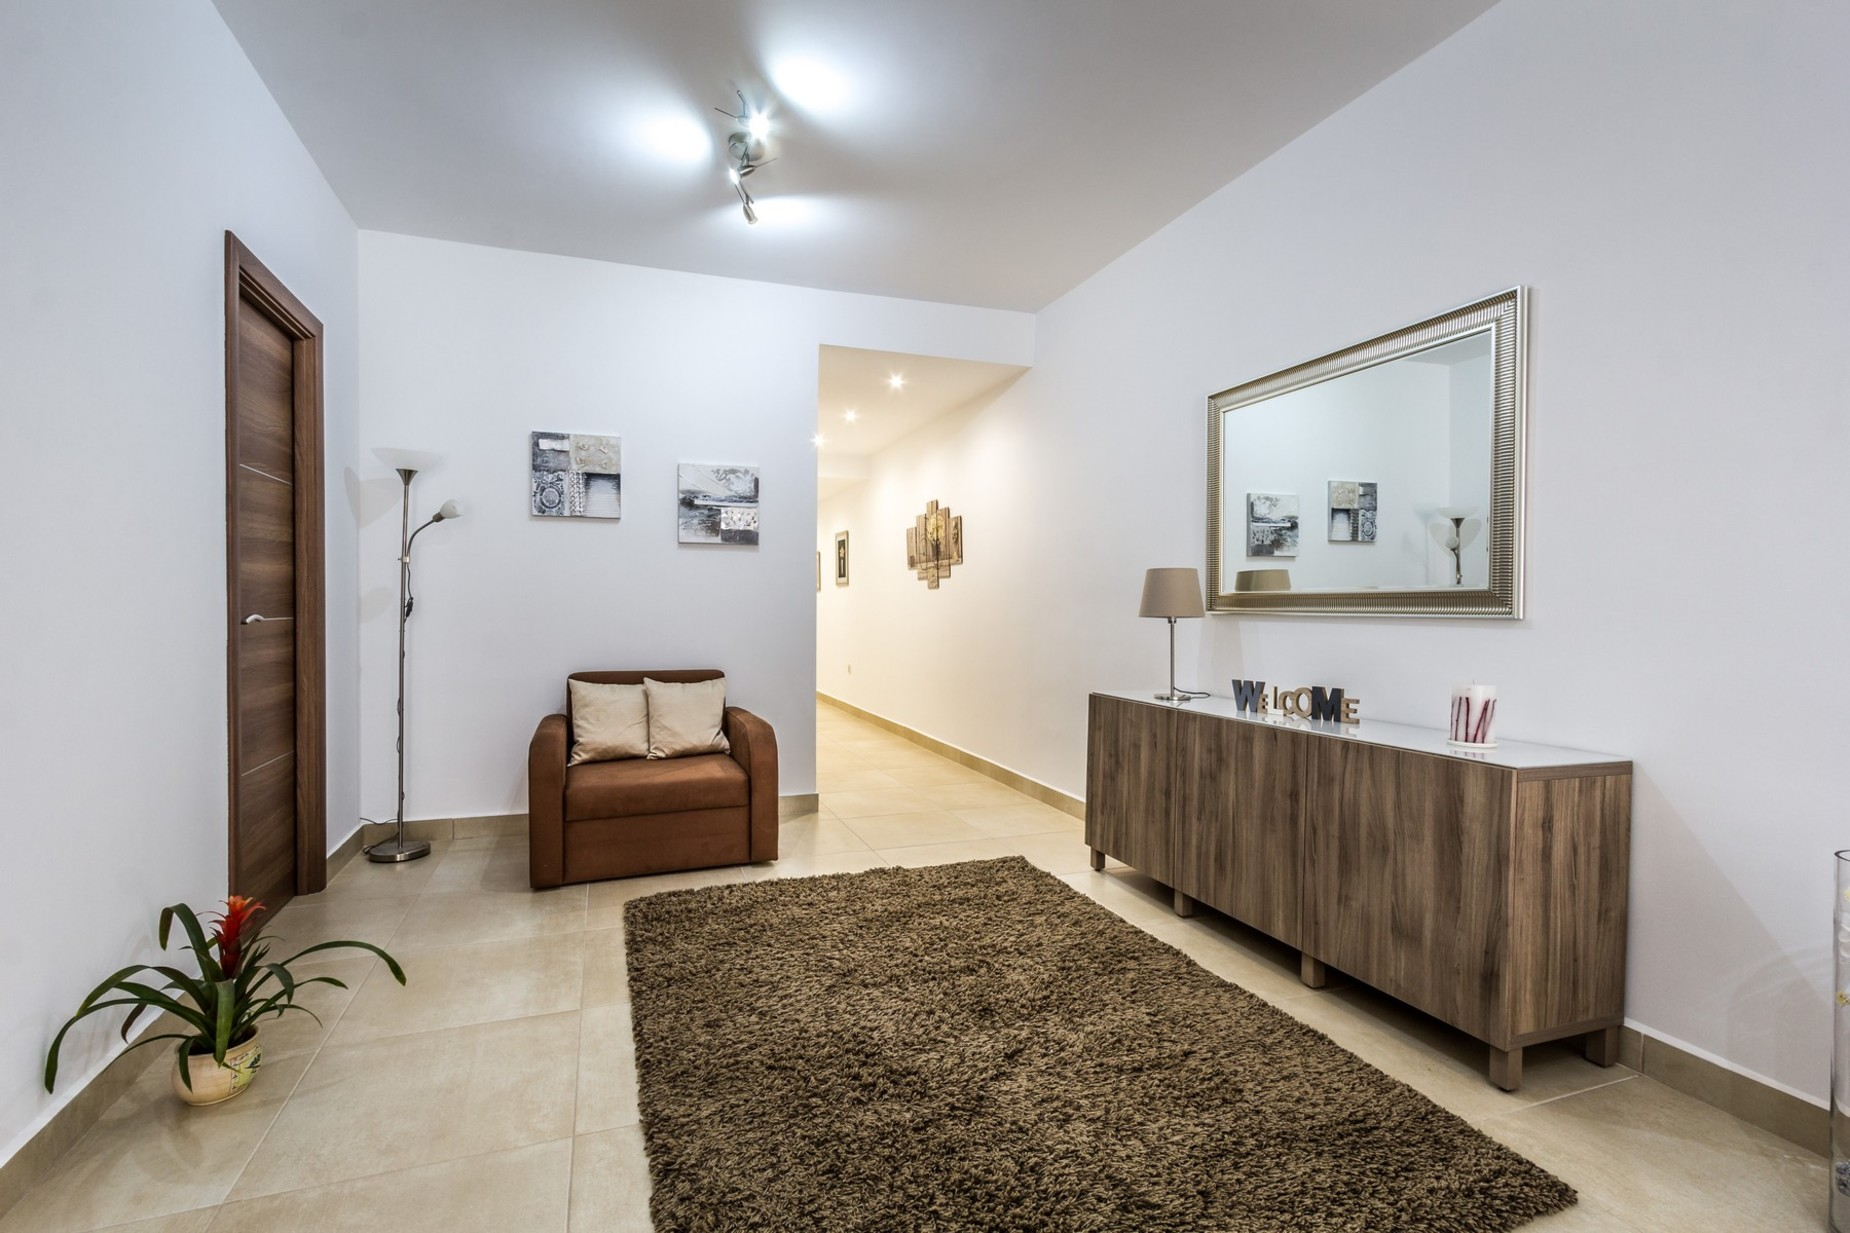 3 bed Apartment For Rent in Mellieha, Mellieha - thumb 7